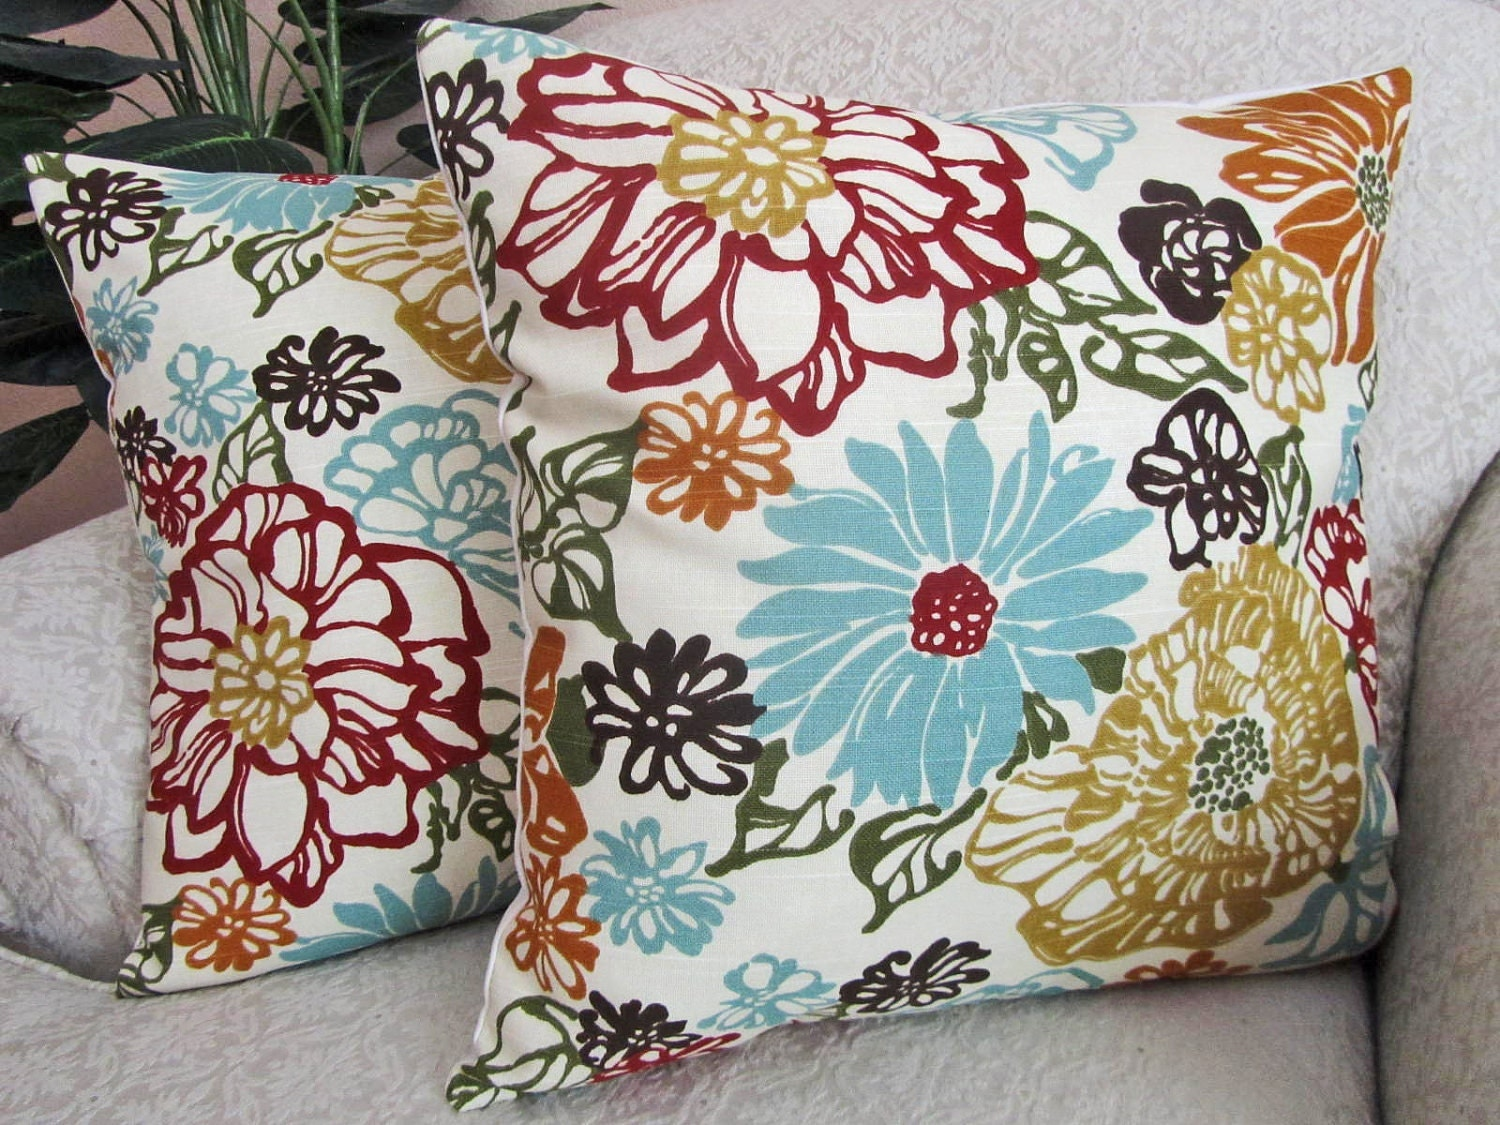 Throw Pillows For A Floral Couch : Floral Throw Pillow Cover Decorative Pillow Robins Egg Blue